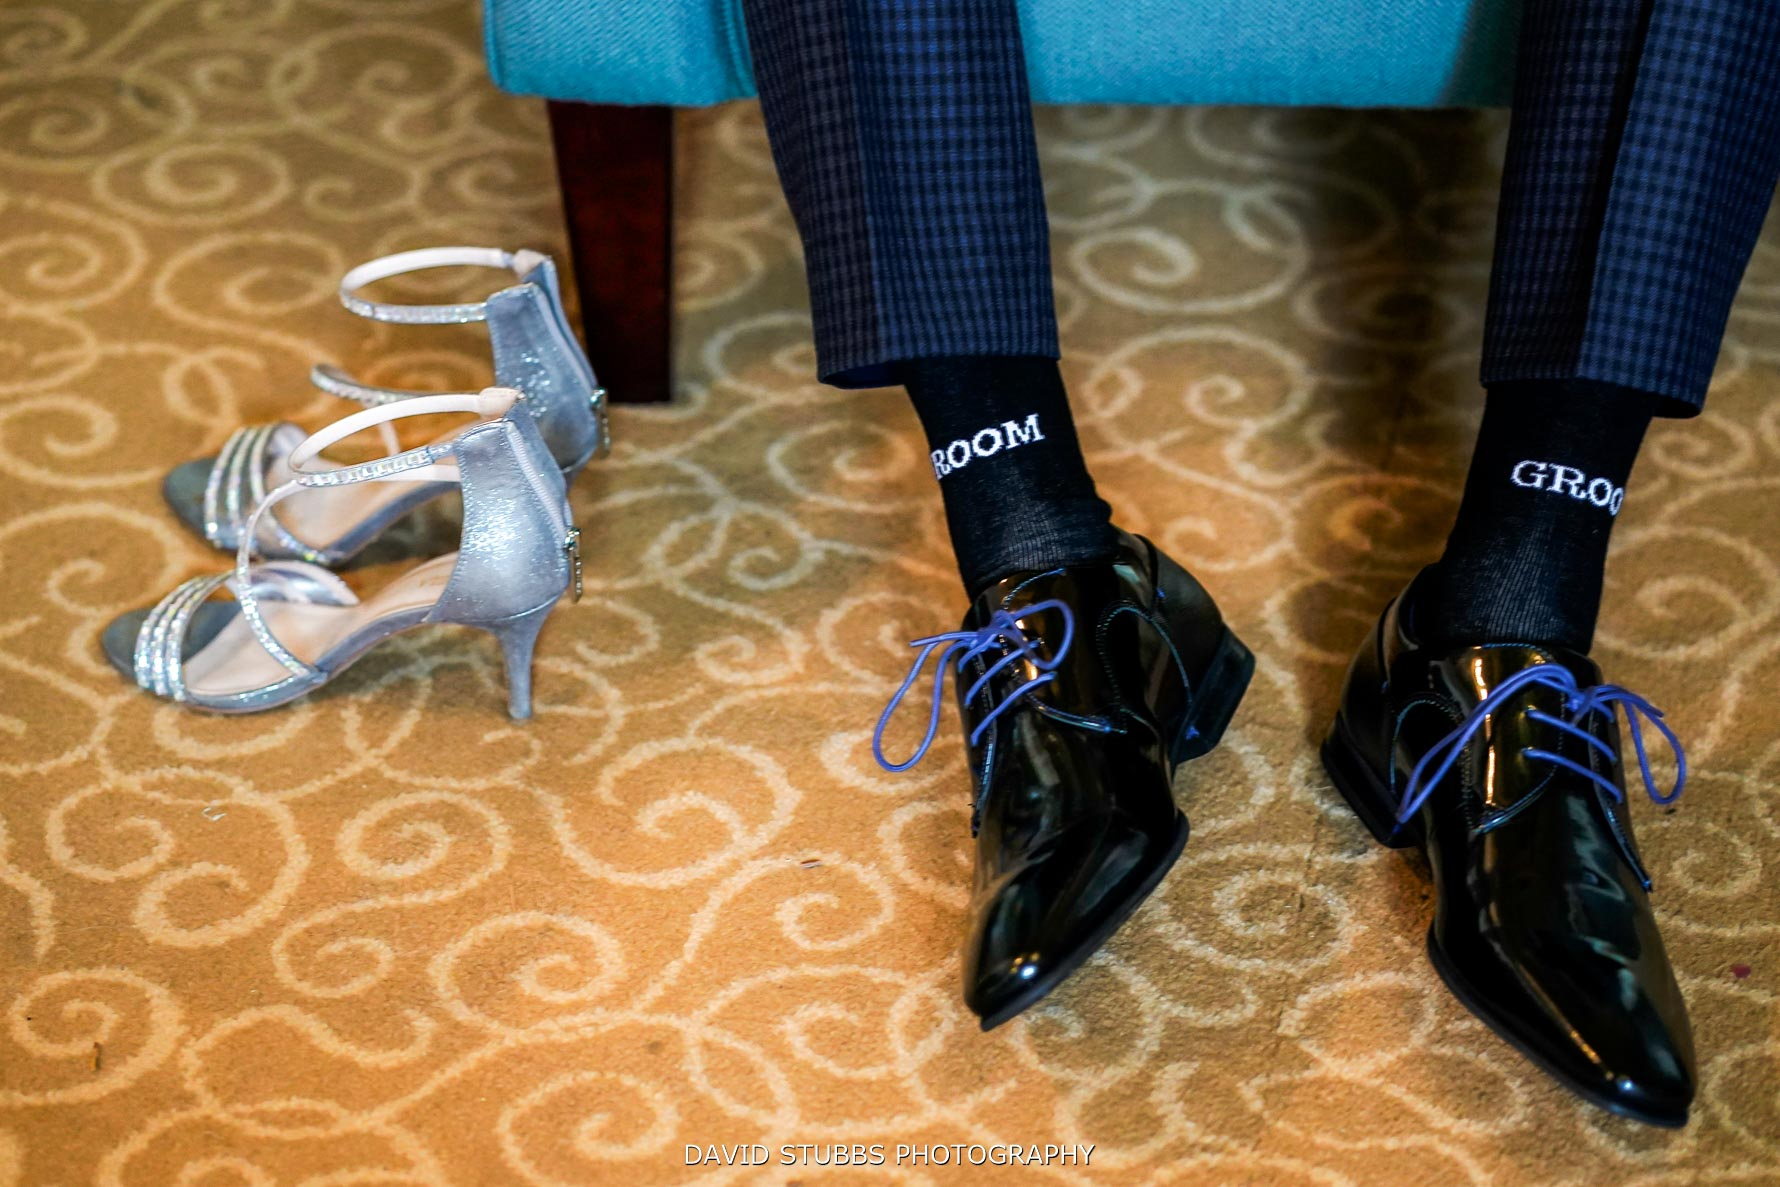 groom and bride shoes